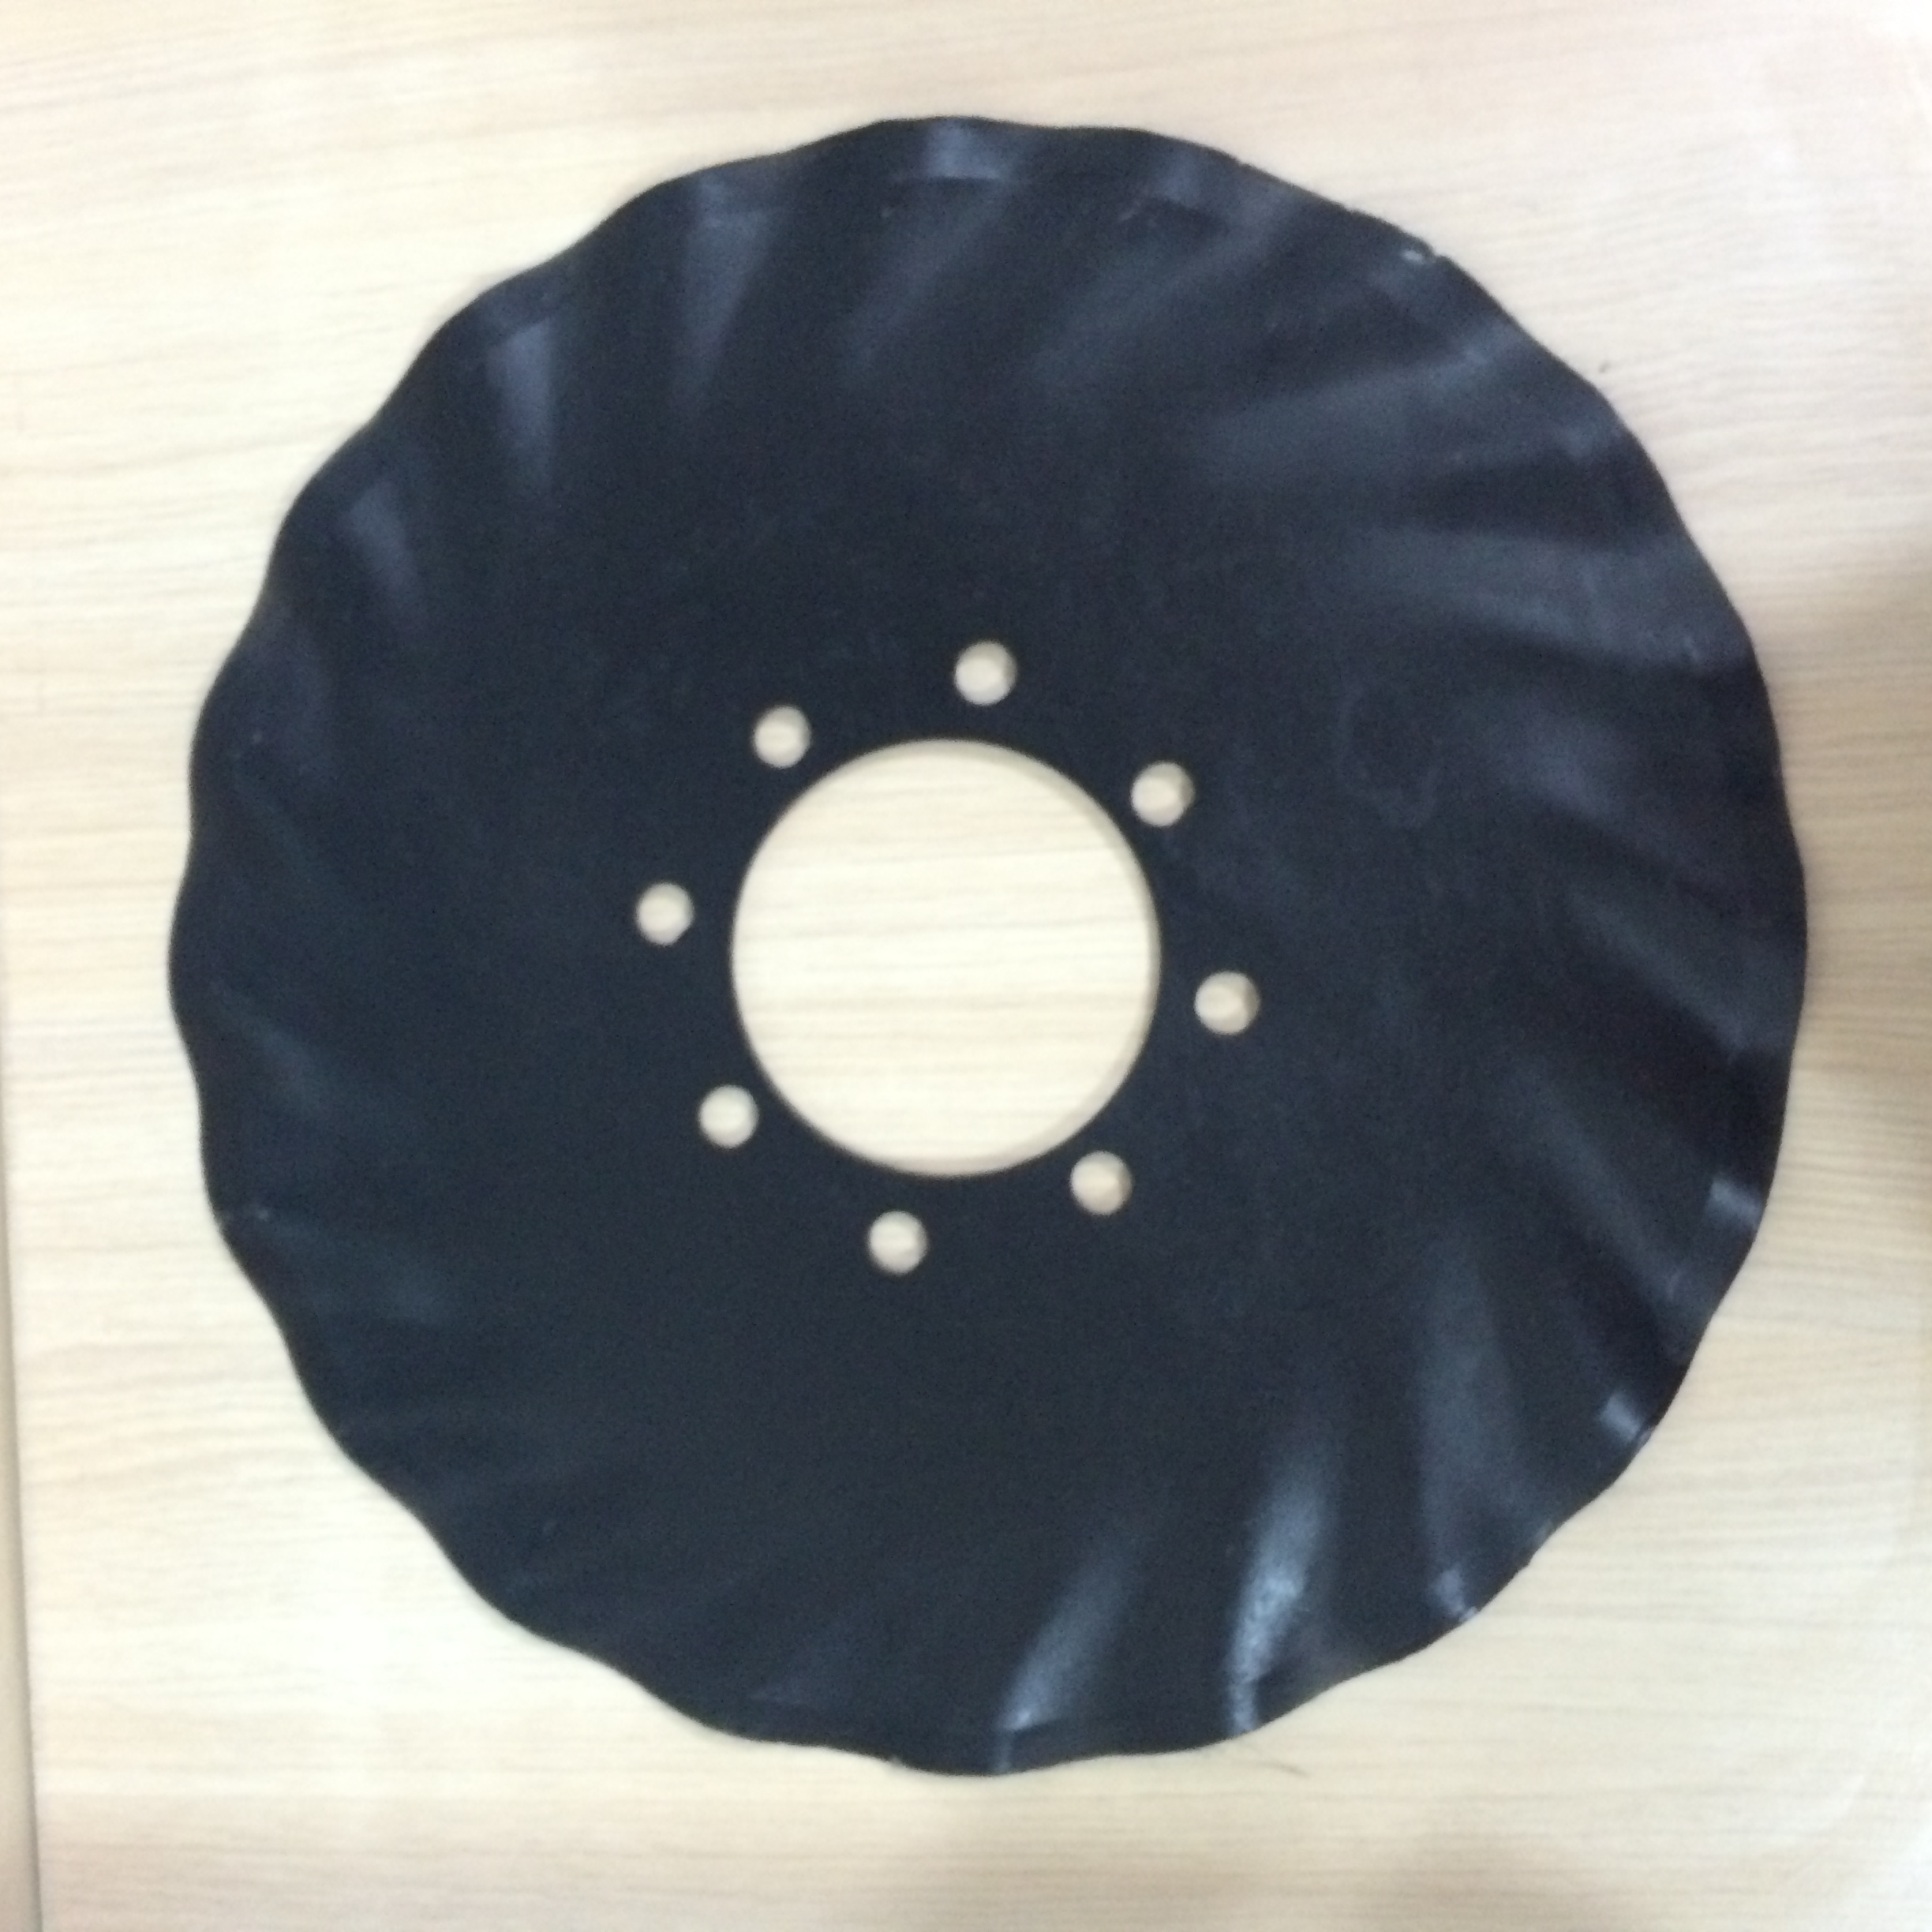 china manufacturer Agricultural disc harrow parts of 65Mn spring steel disc blade65Mn